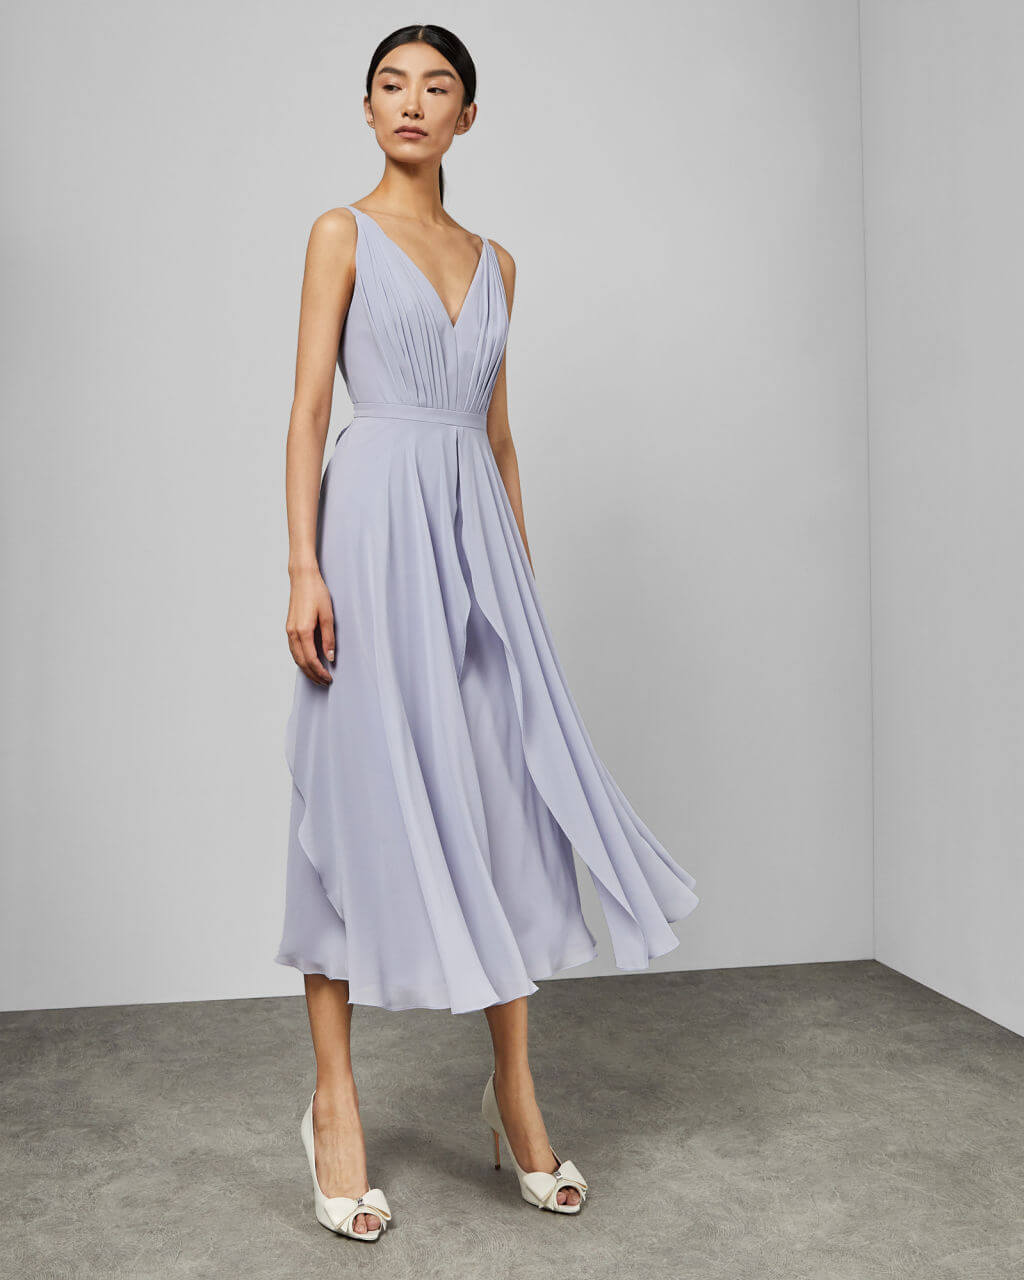 b7d5ea48a196 12 Dresses At Ted Baker You Should Buy To Turn Heads | I AM & CO®